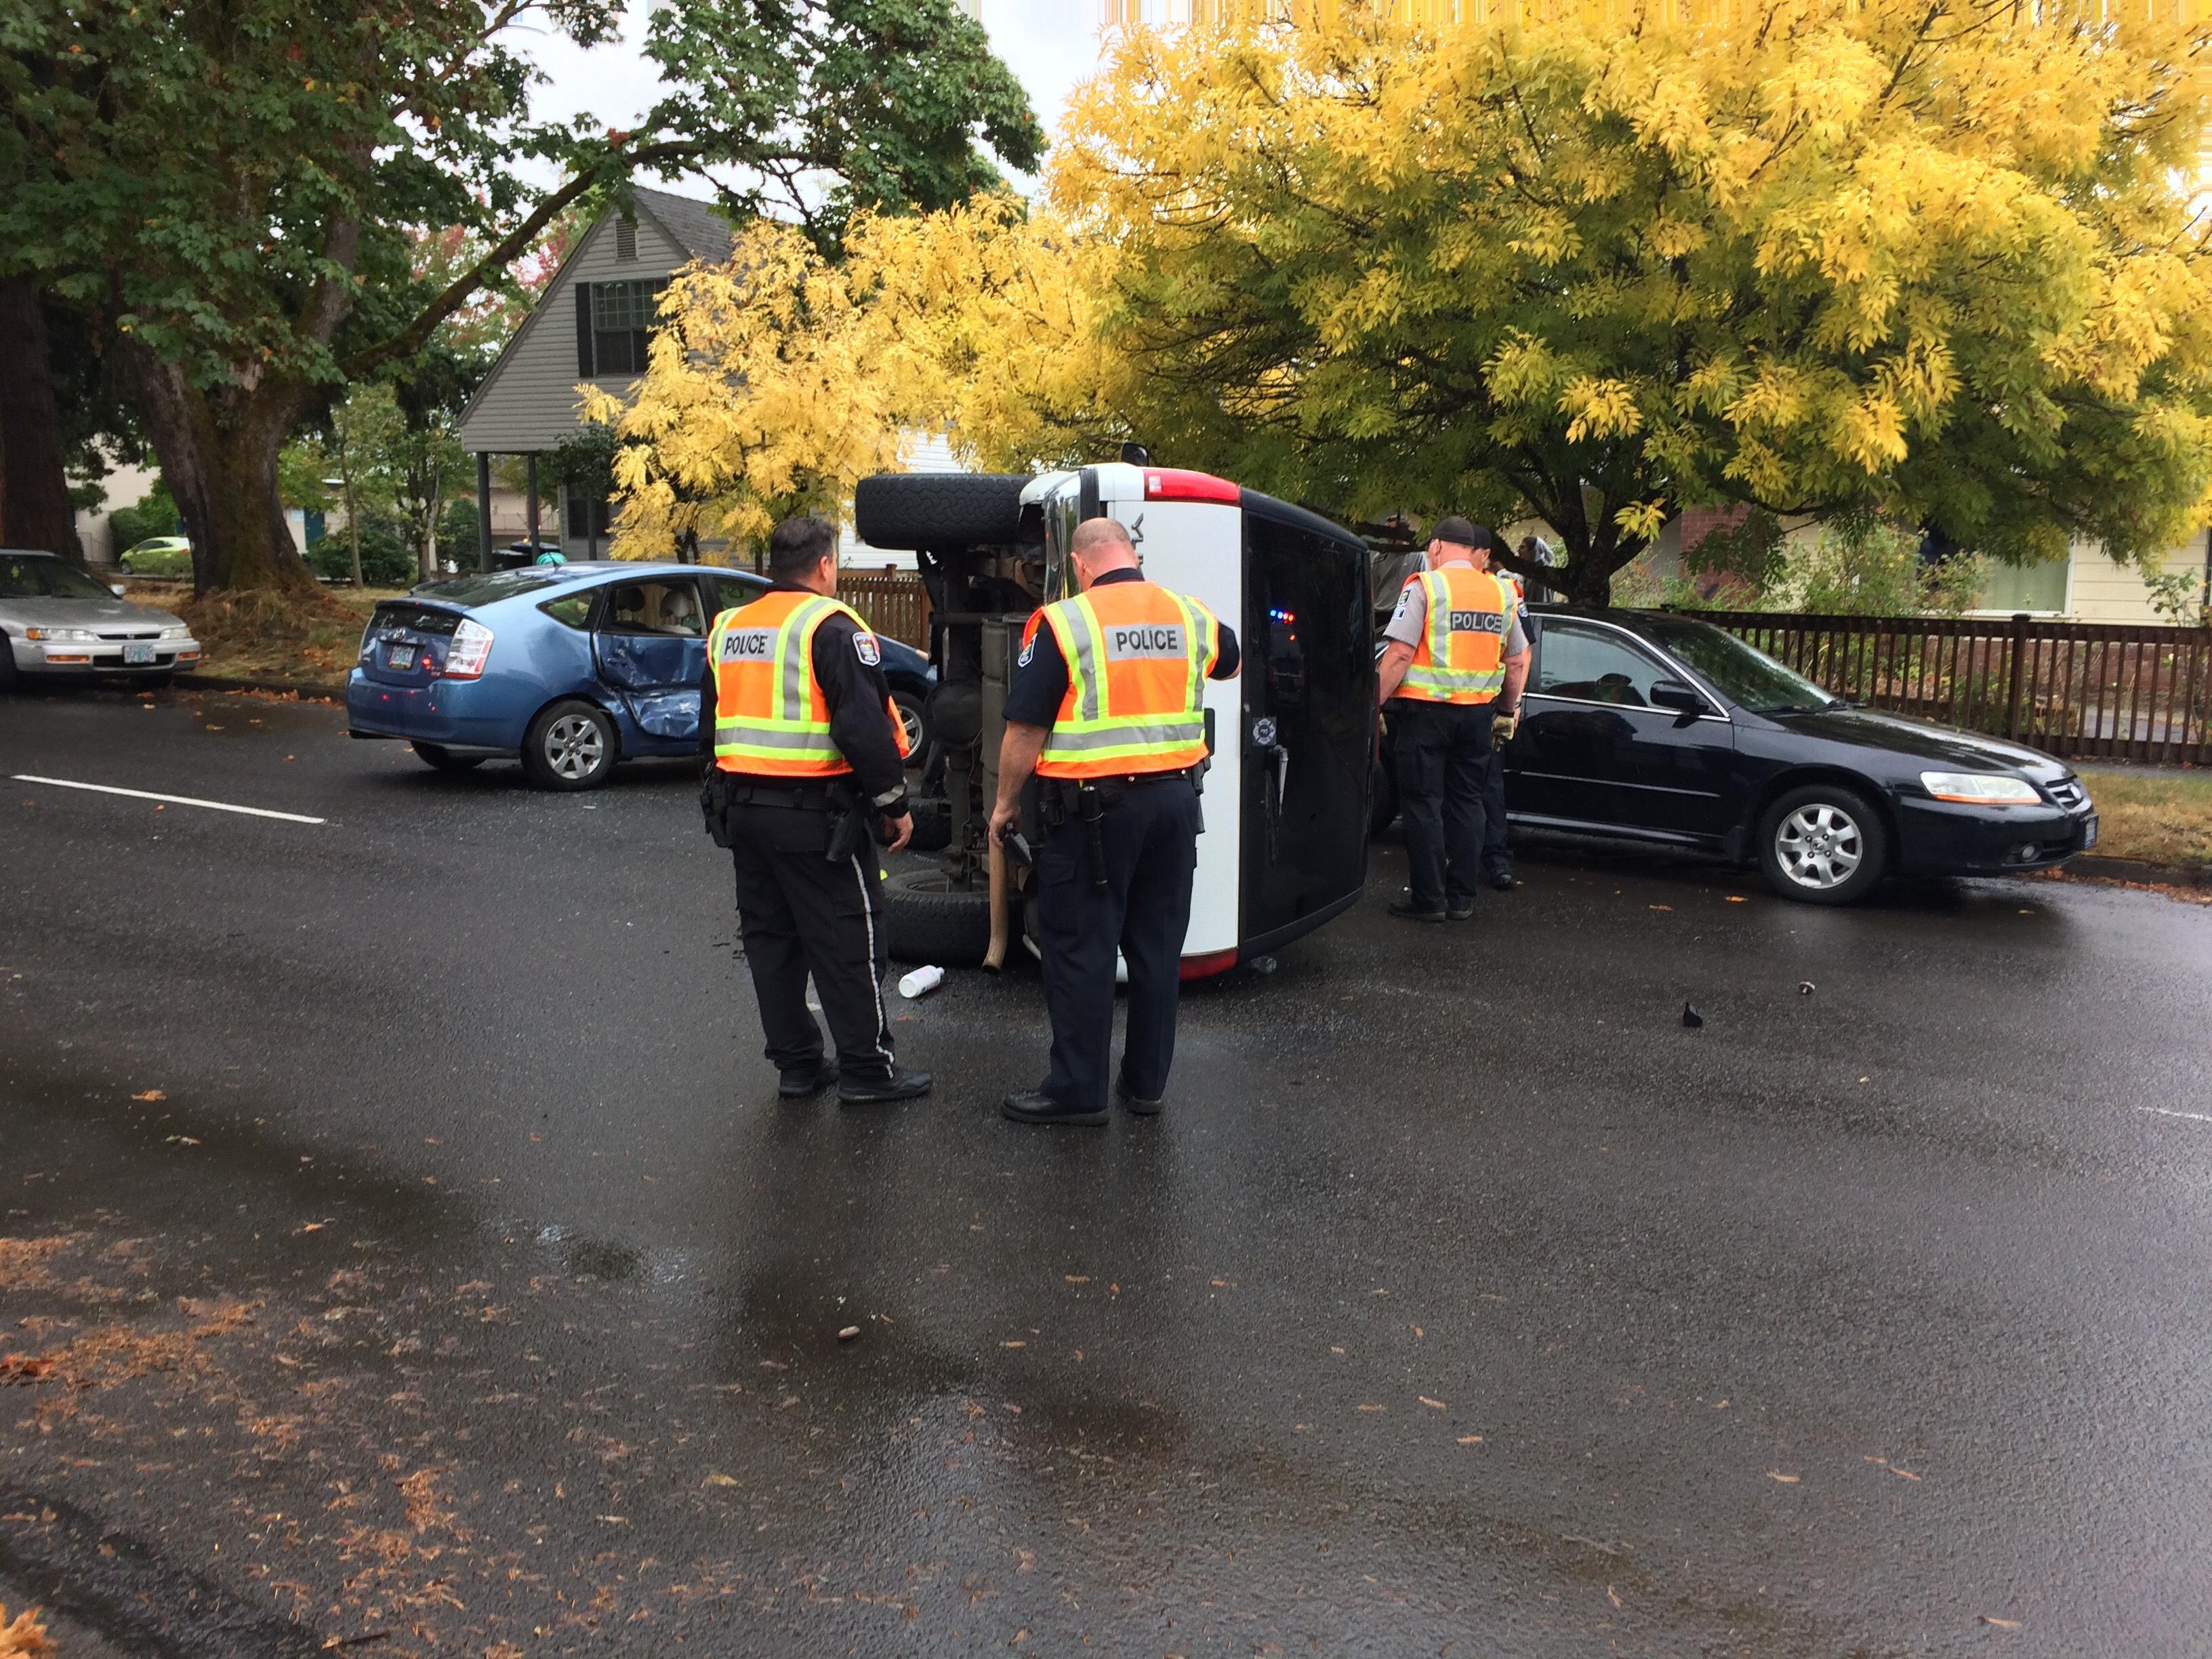 A crash involving a Toyota Prius and a GMC Yukon left the SUV on its side on Hilyard Street near 23rd Avenue in Eugene on Friday. No word yet on whether anyone was injured or the cause of the crash. This story will be updated. (SBG)